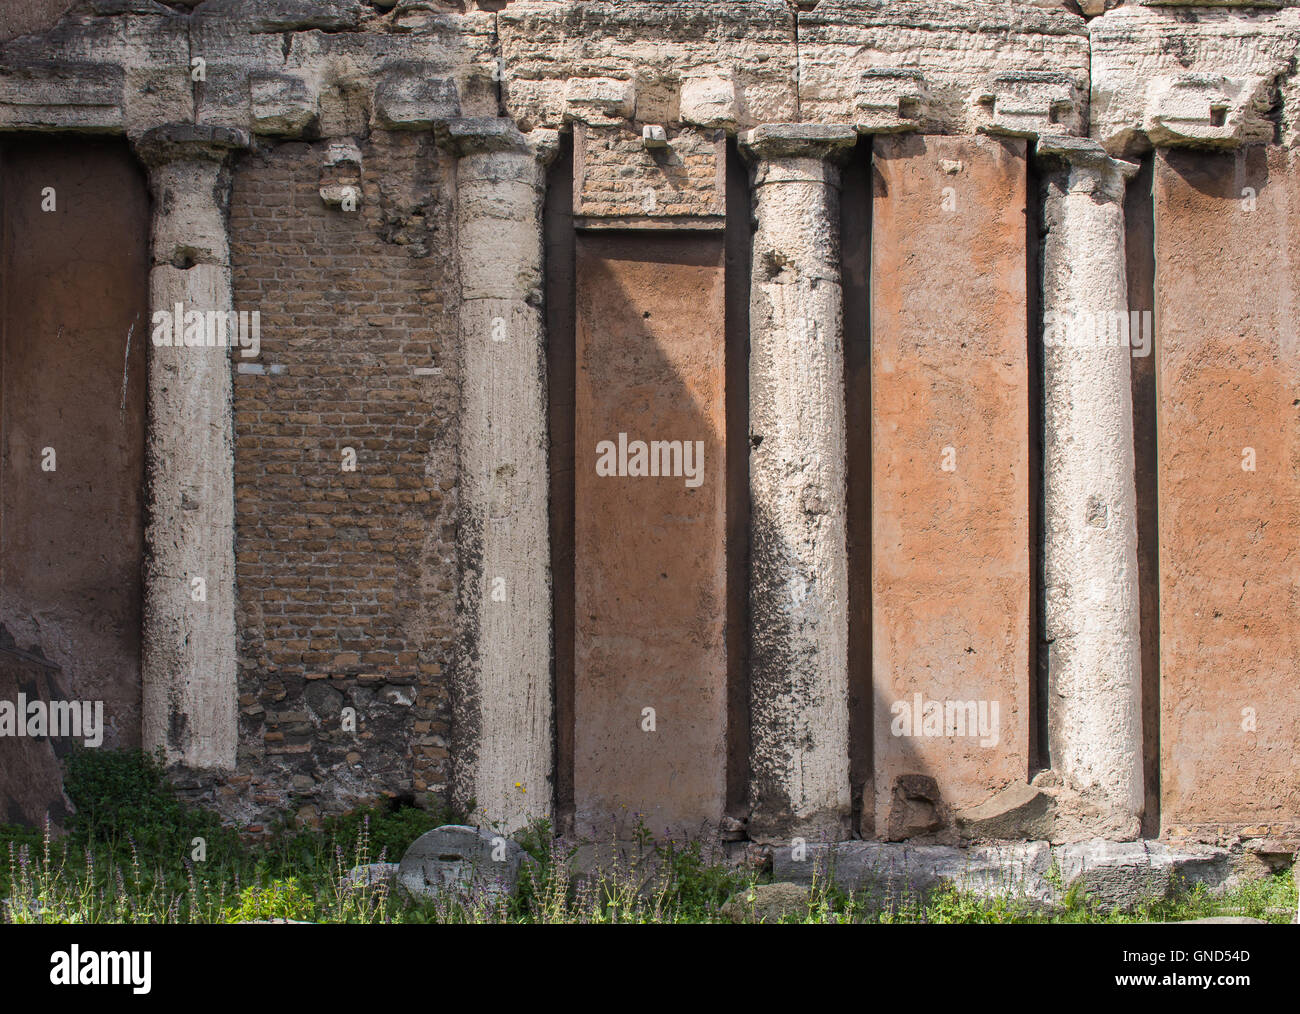 Roman Architecture Columns typical orange color of the roman architecture, with four old